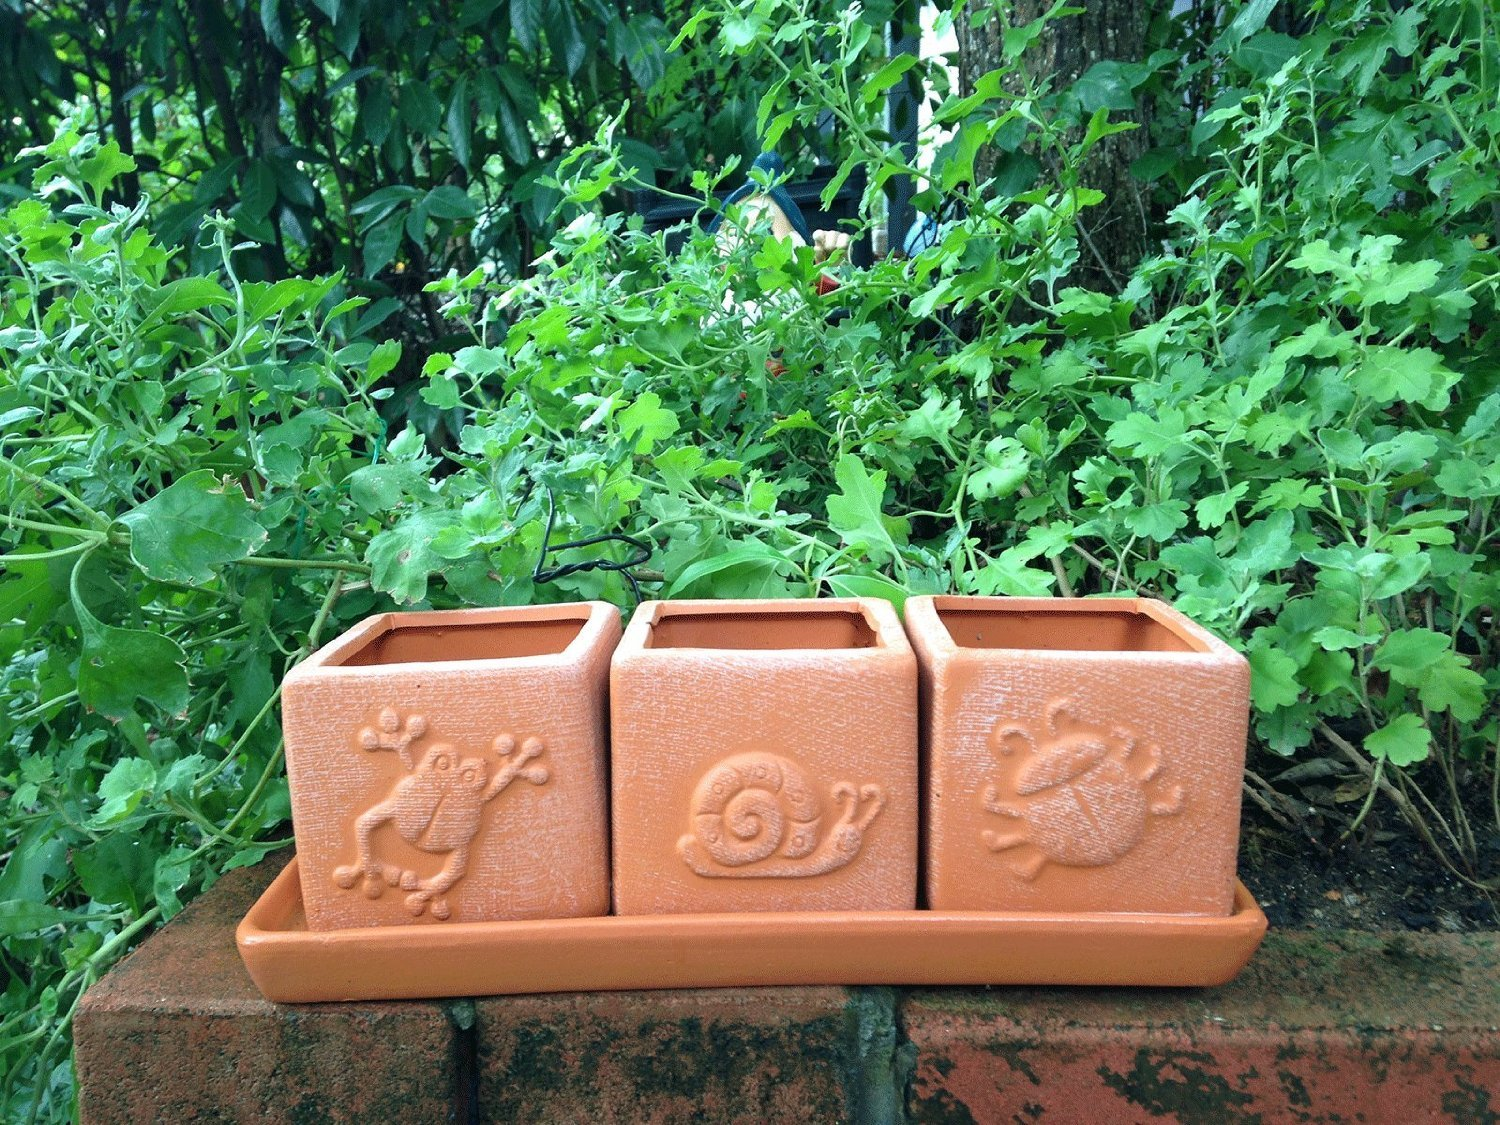 Terra Cotta Clay Set of 3 Small Square Embossed Earthenware Planters with tray